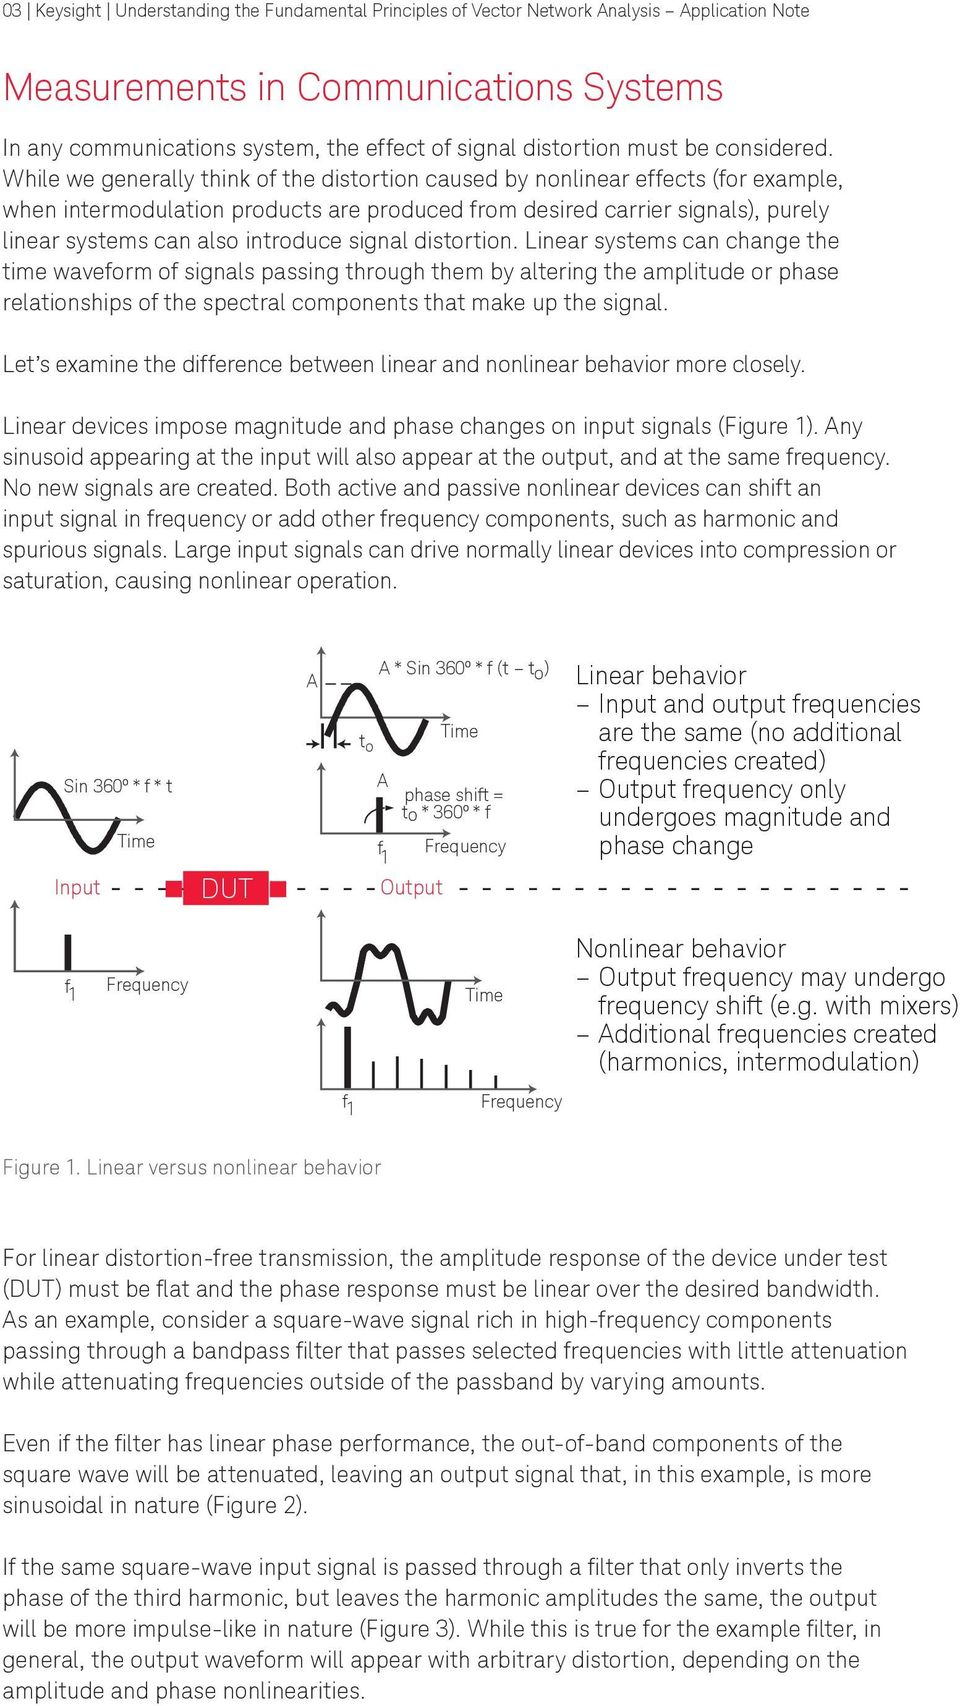 While we generally think of the distortion caused by nonlinear effects (for example, when intermodulation products are produced from desired carrier signals), purely linear systems can also introduce